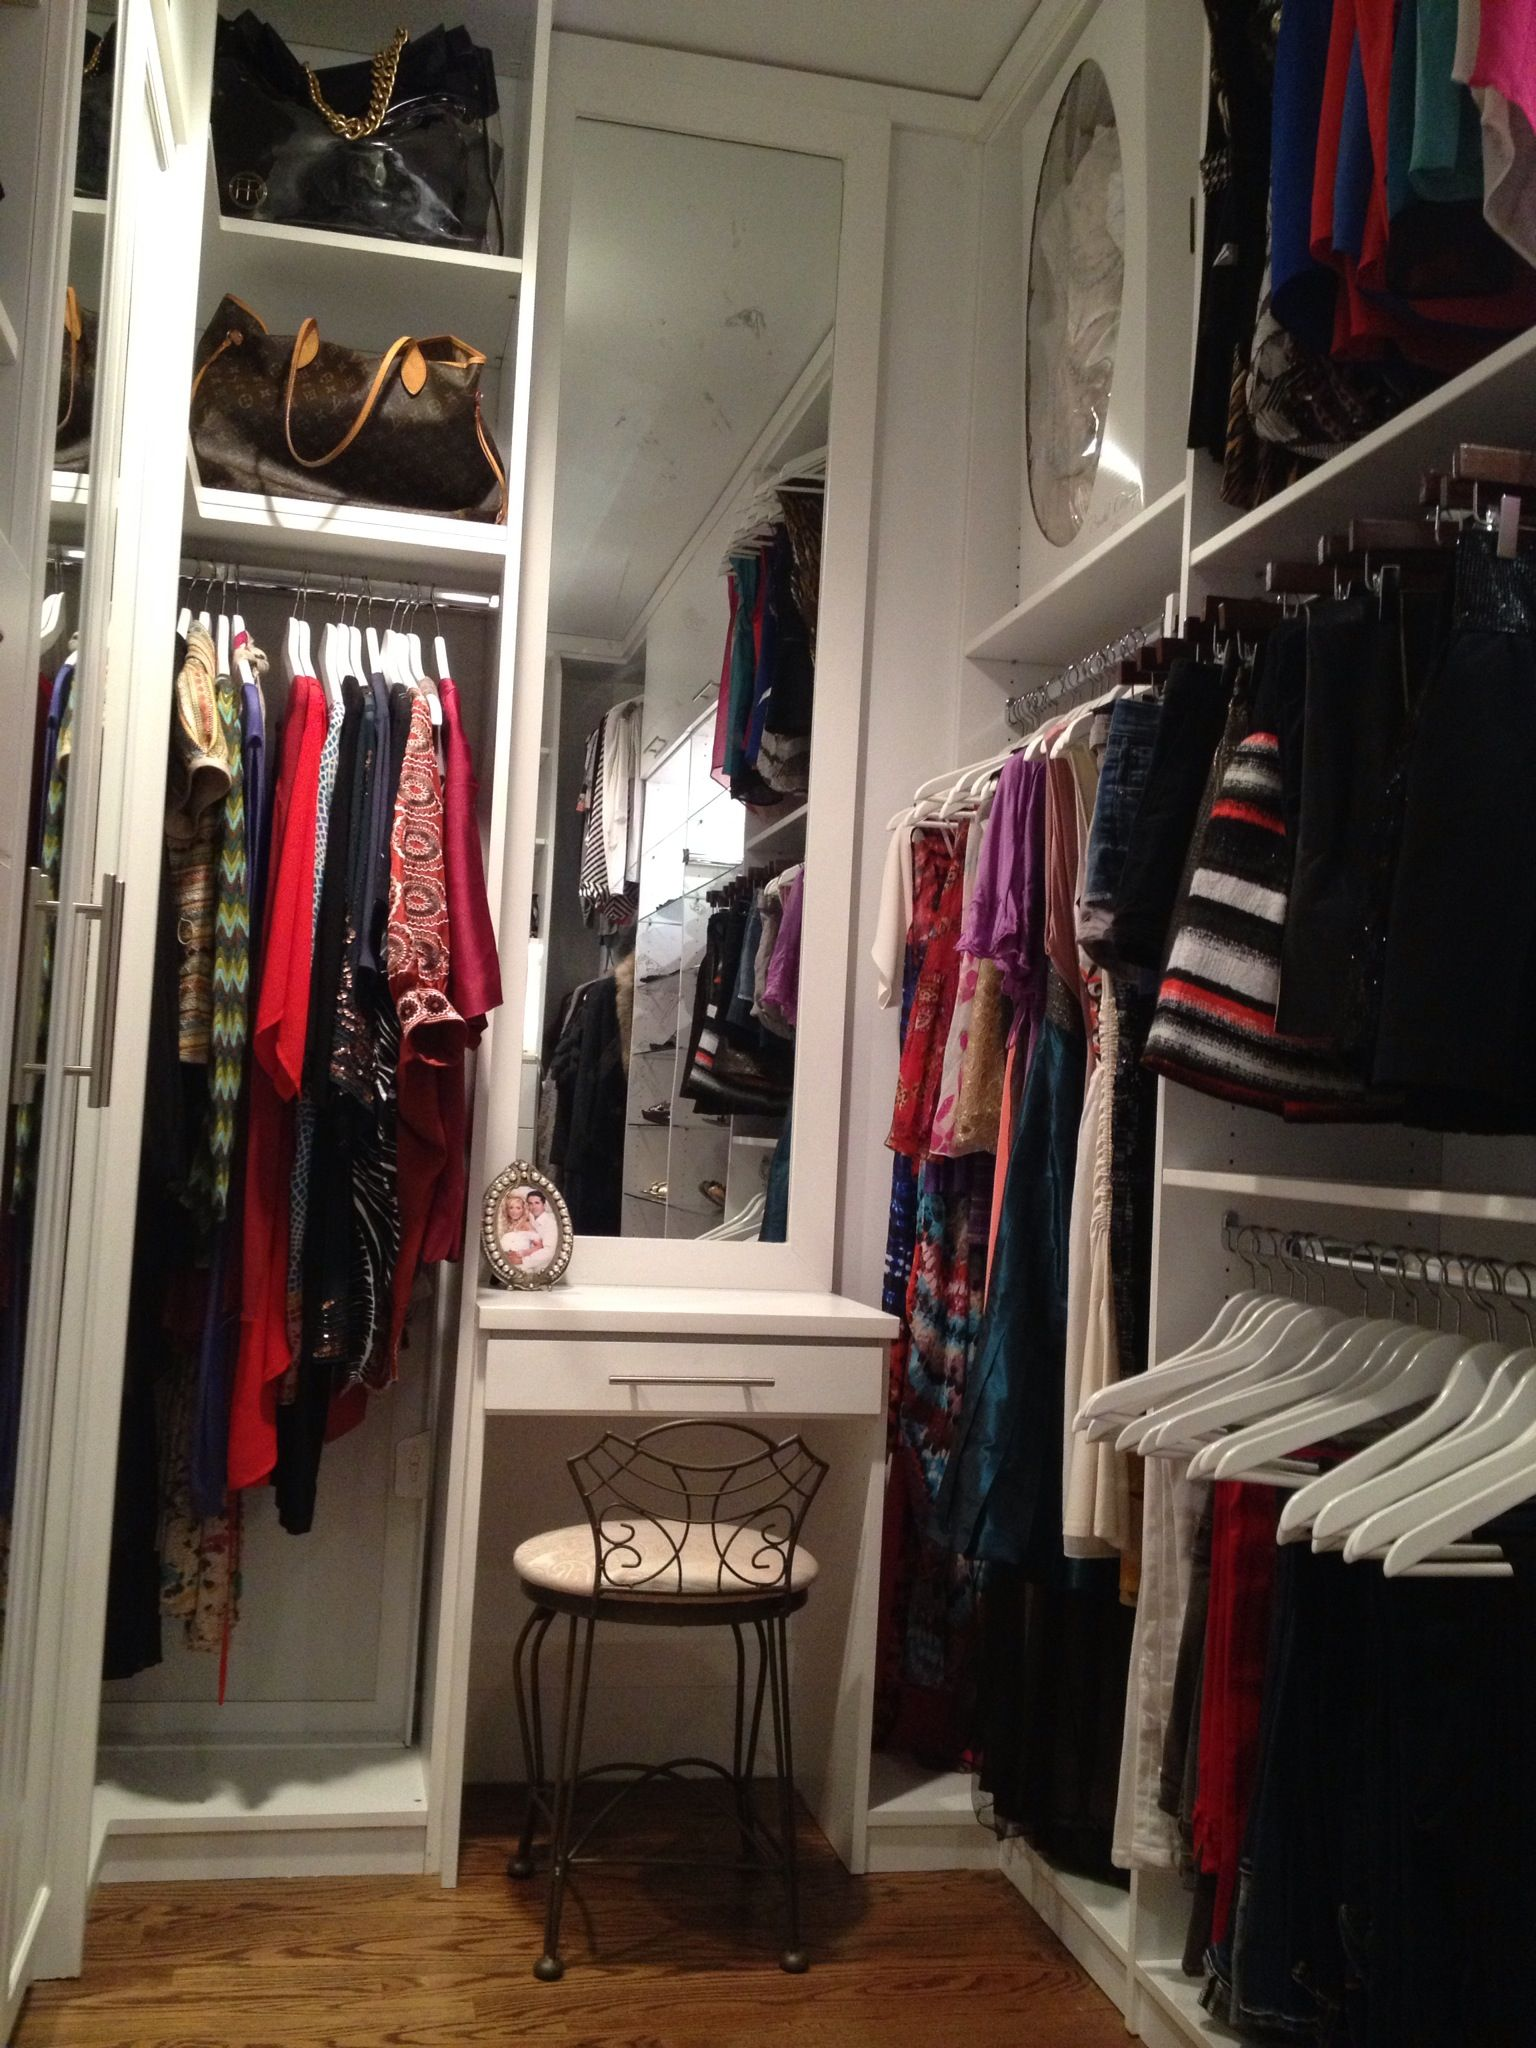 size storage x ideas organizing best of marvelous john full organizers inspired image for closets small space design by home closet